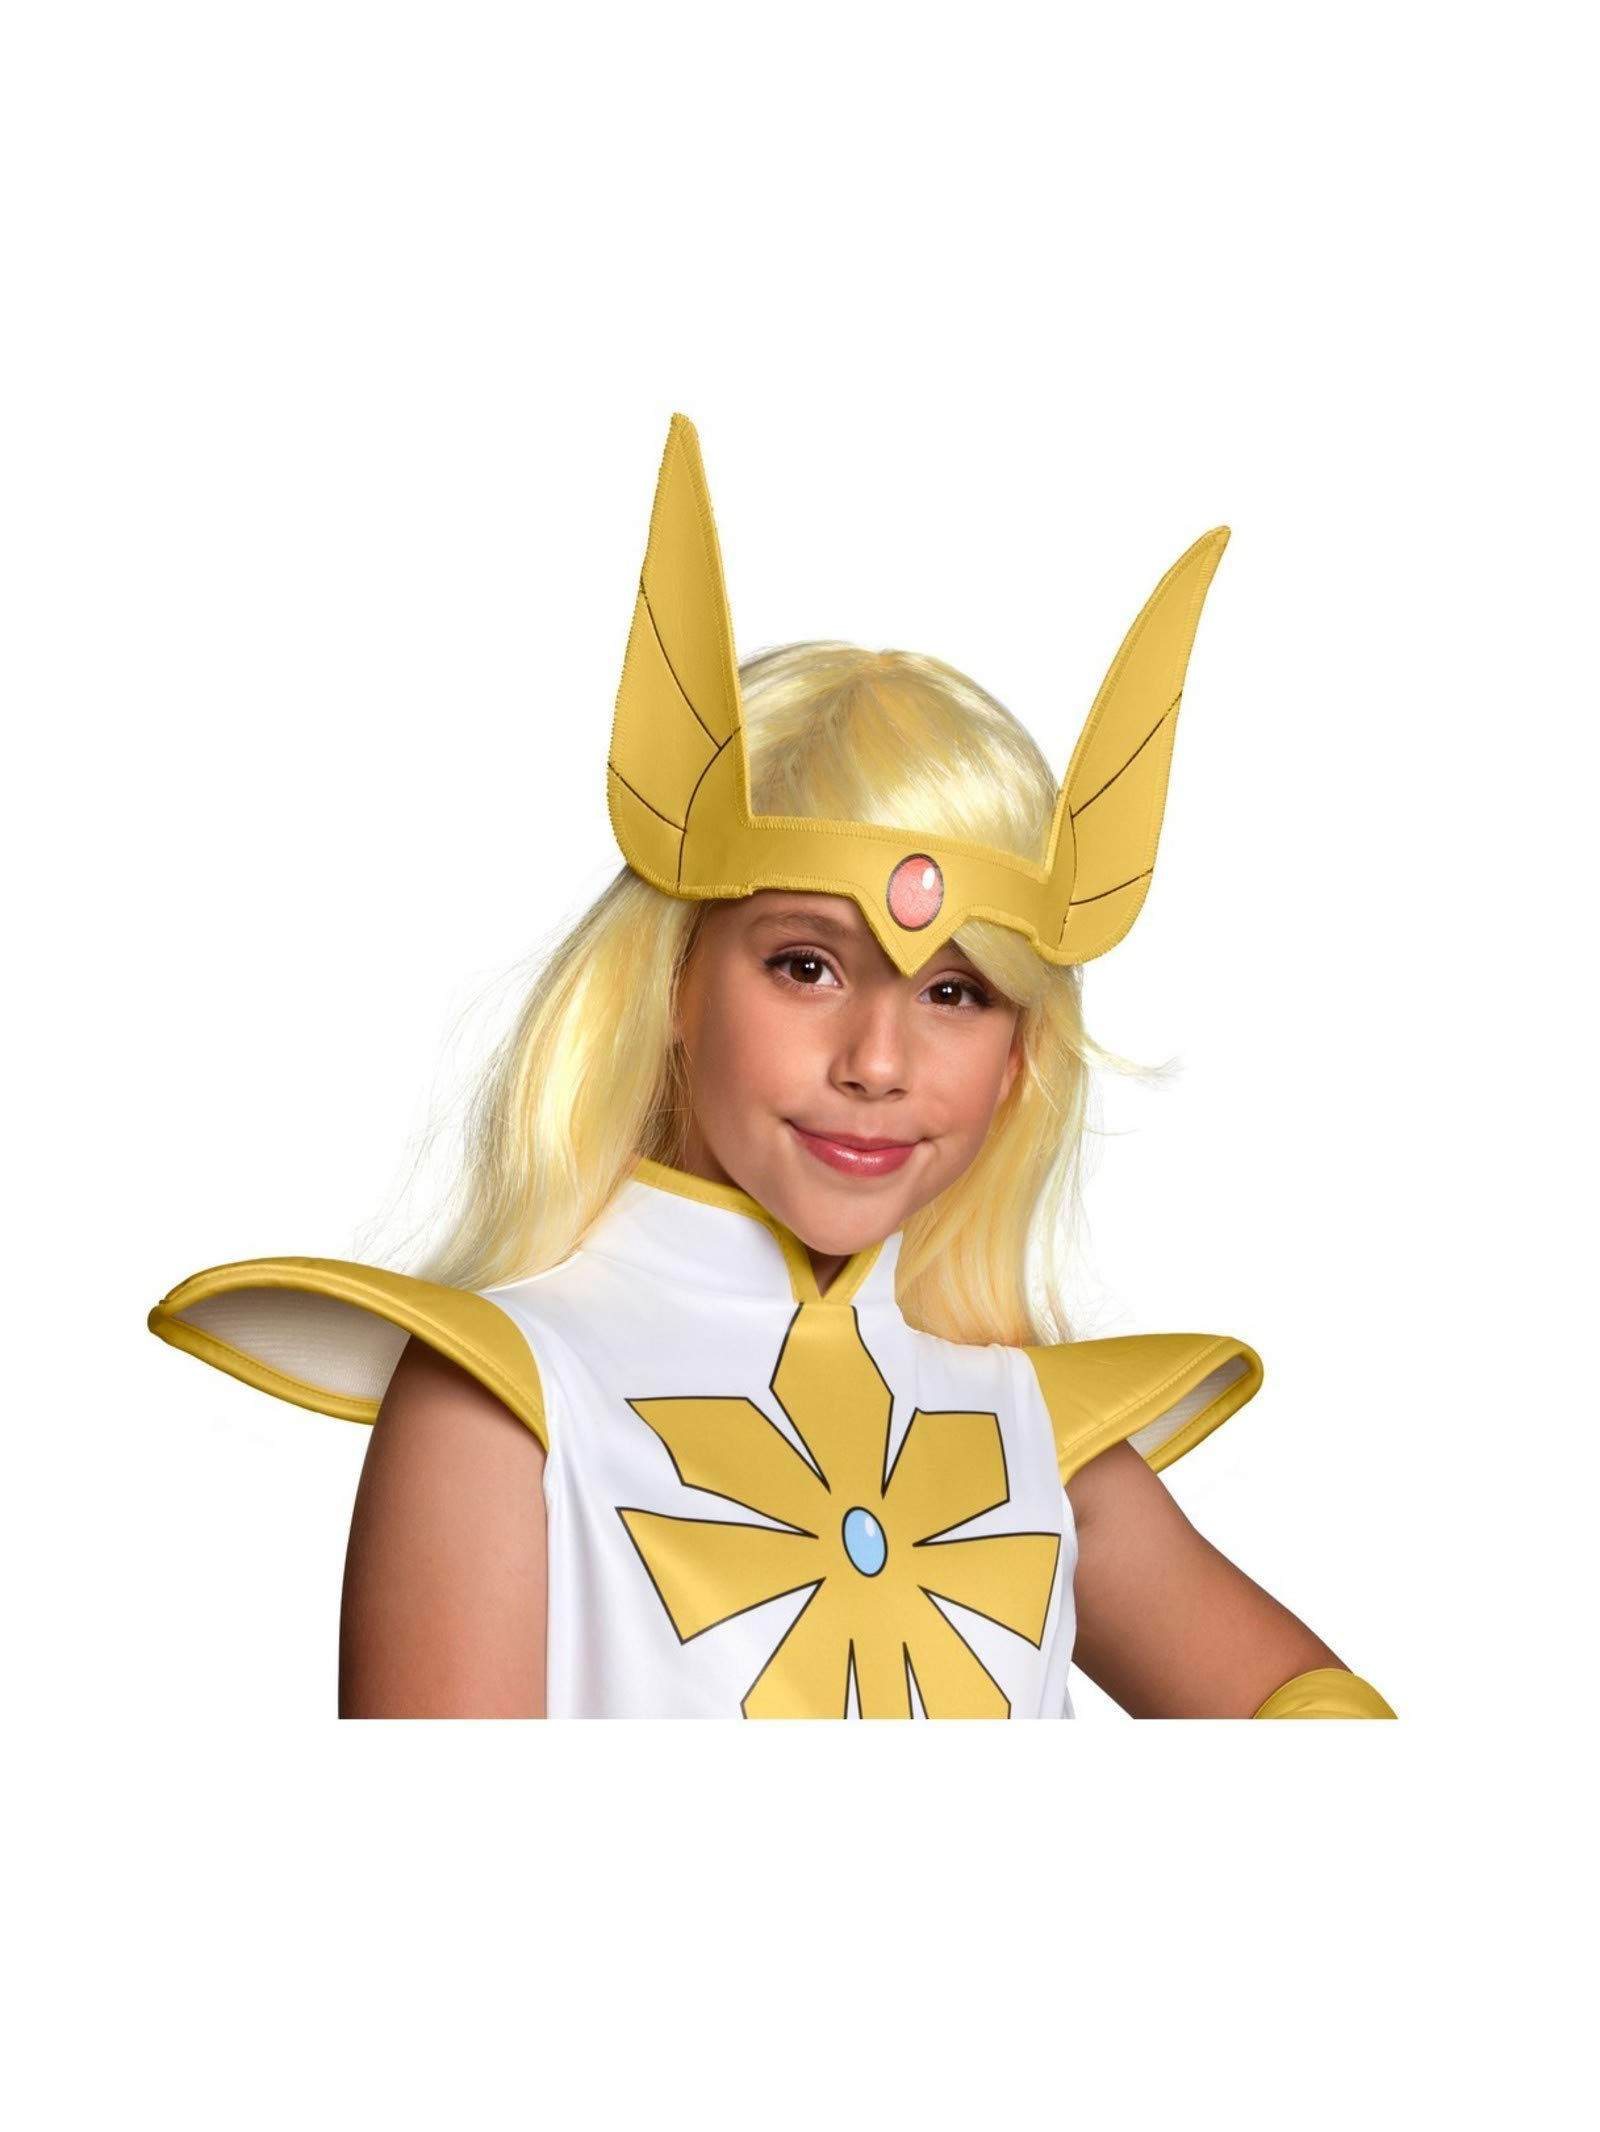 Rubie's She-Ra and The Princesses of Power Child's She-Ra Wig by Rubie's